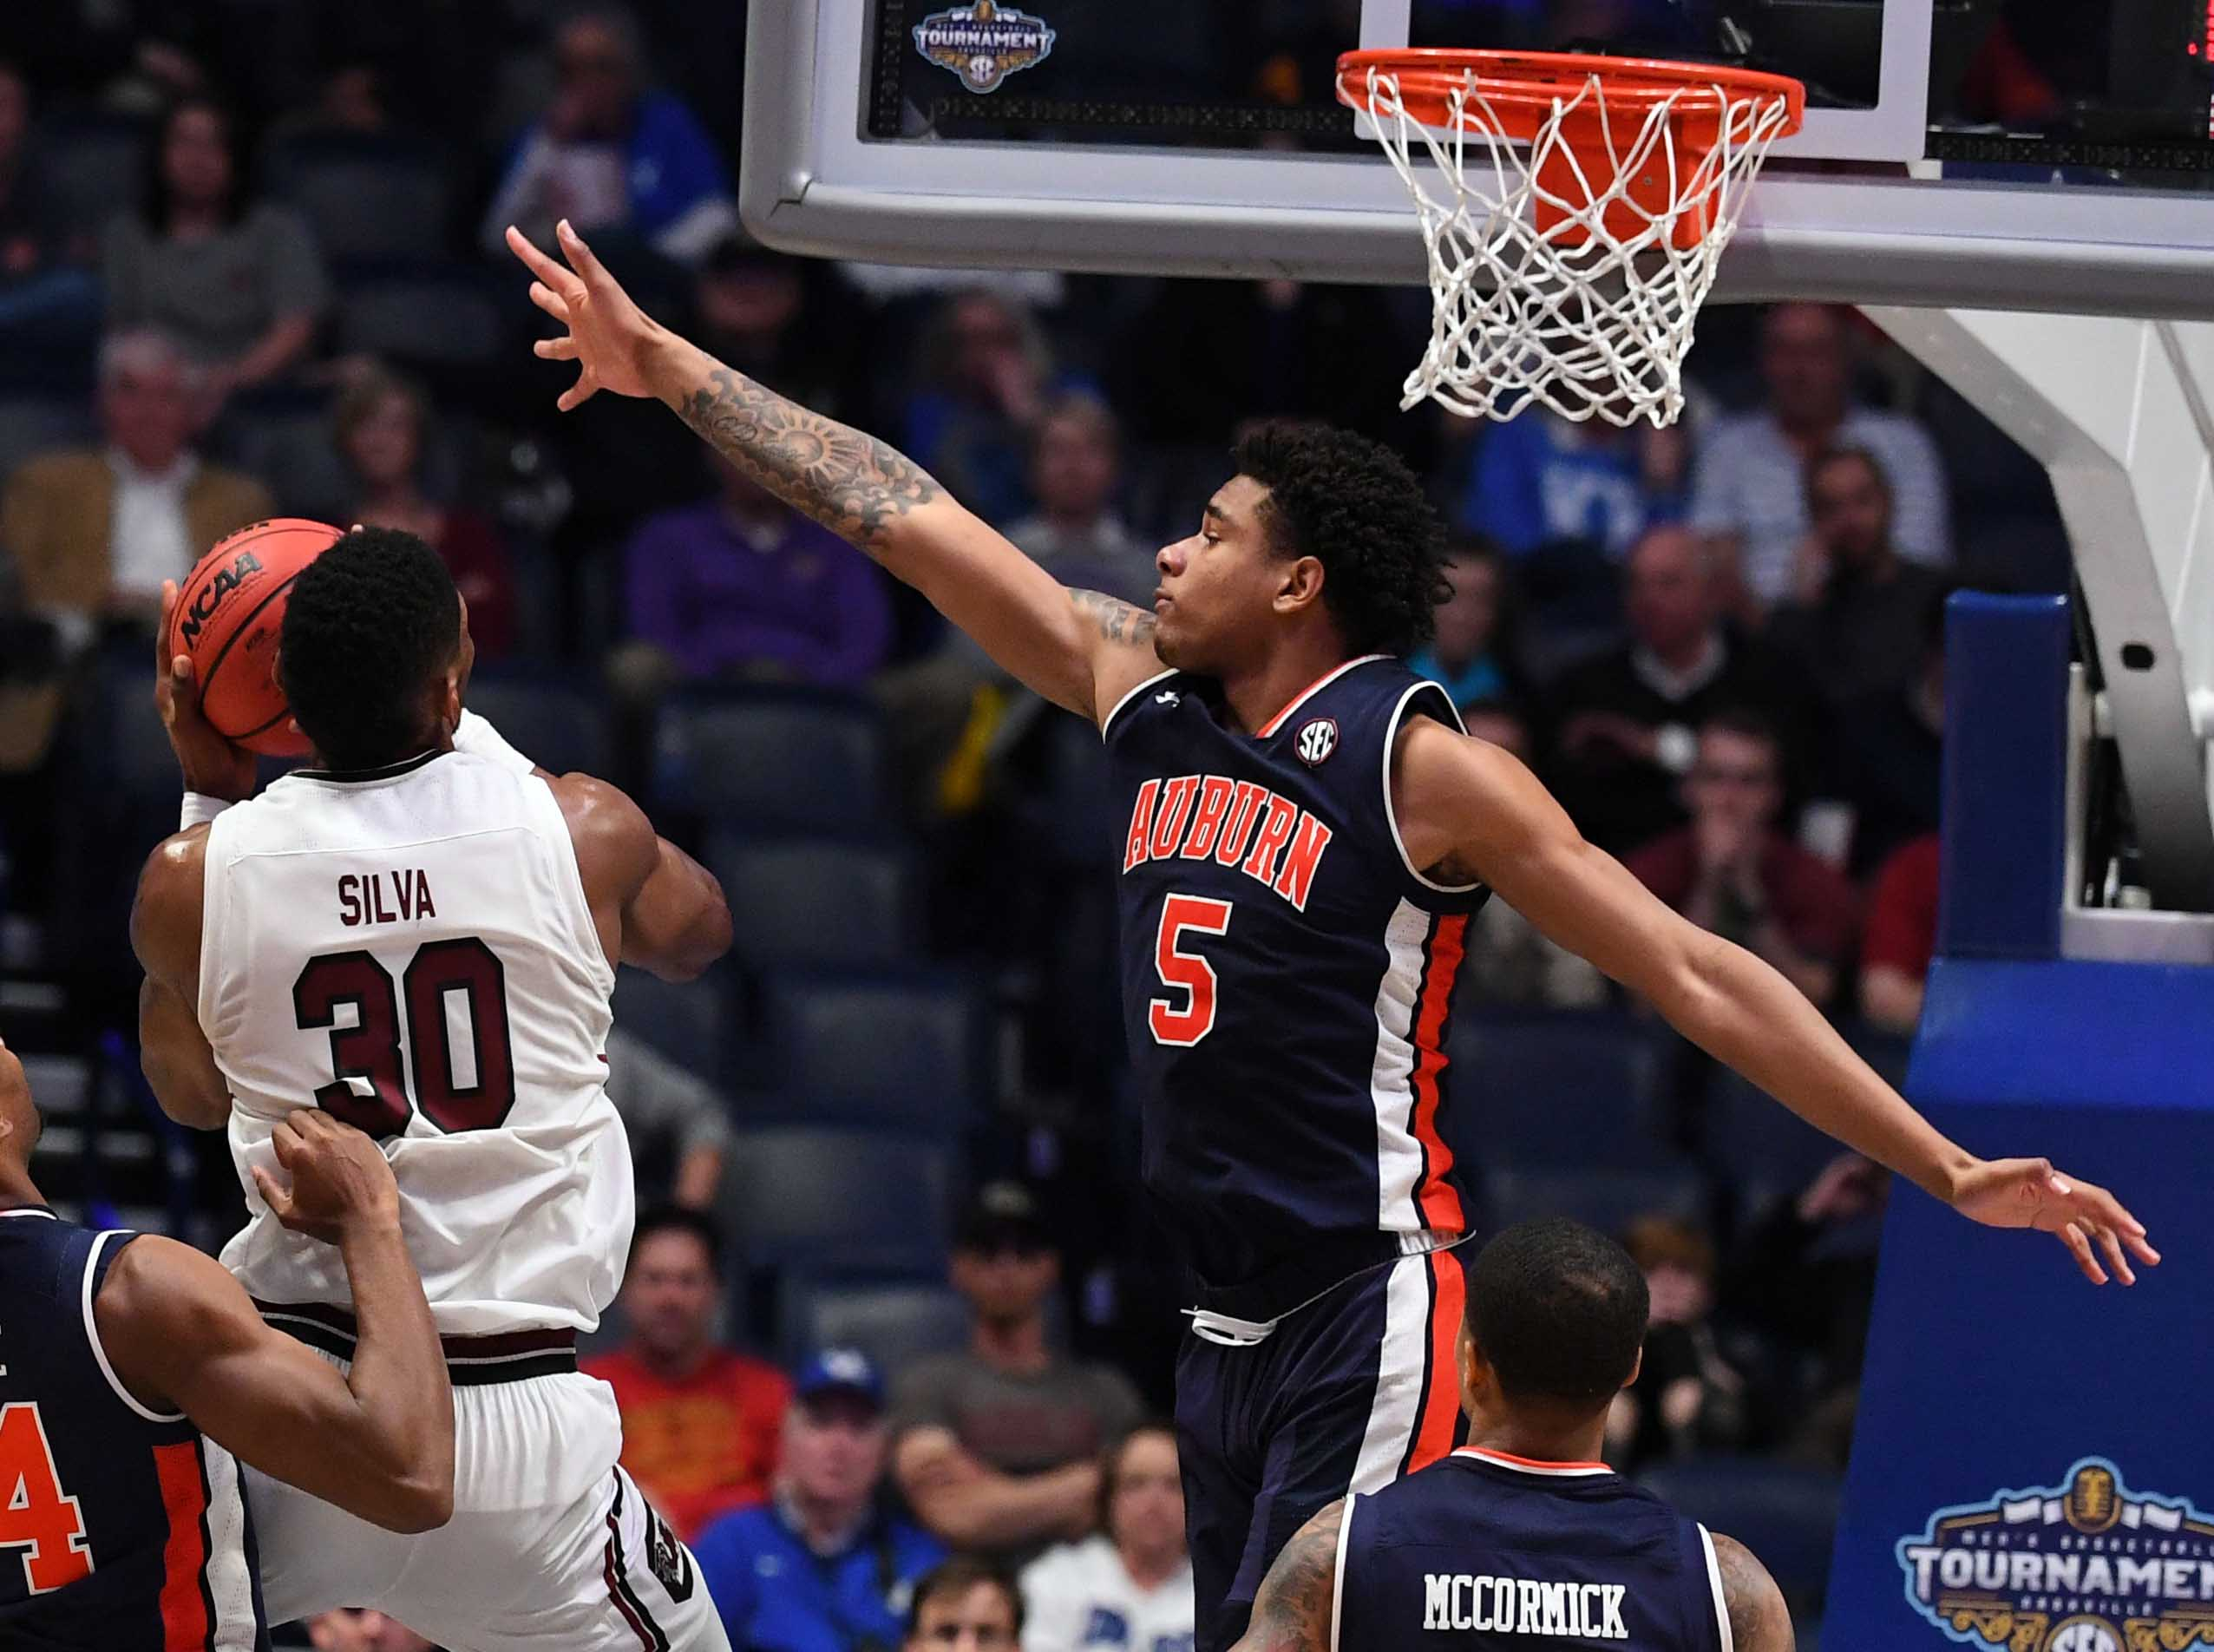 NCAA Basketball: SEC Conference Tournament-South Carolina vs Auburn